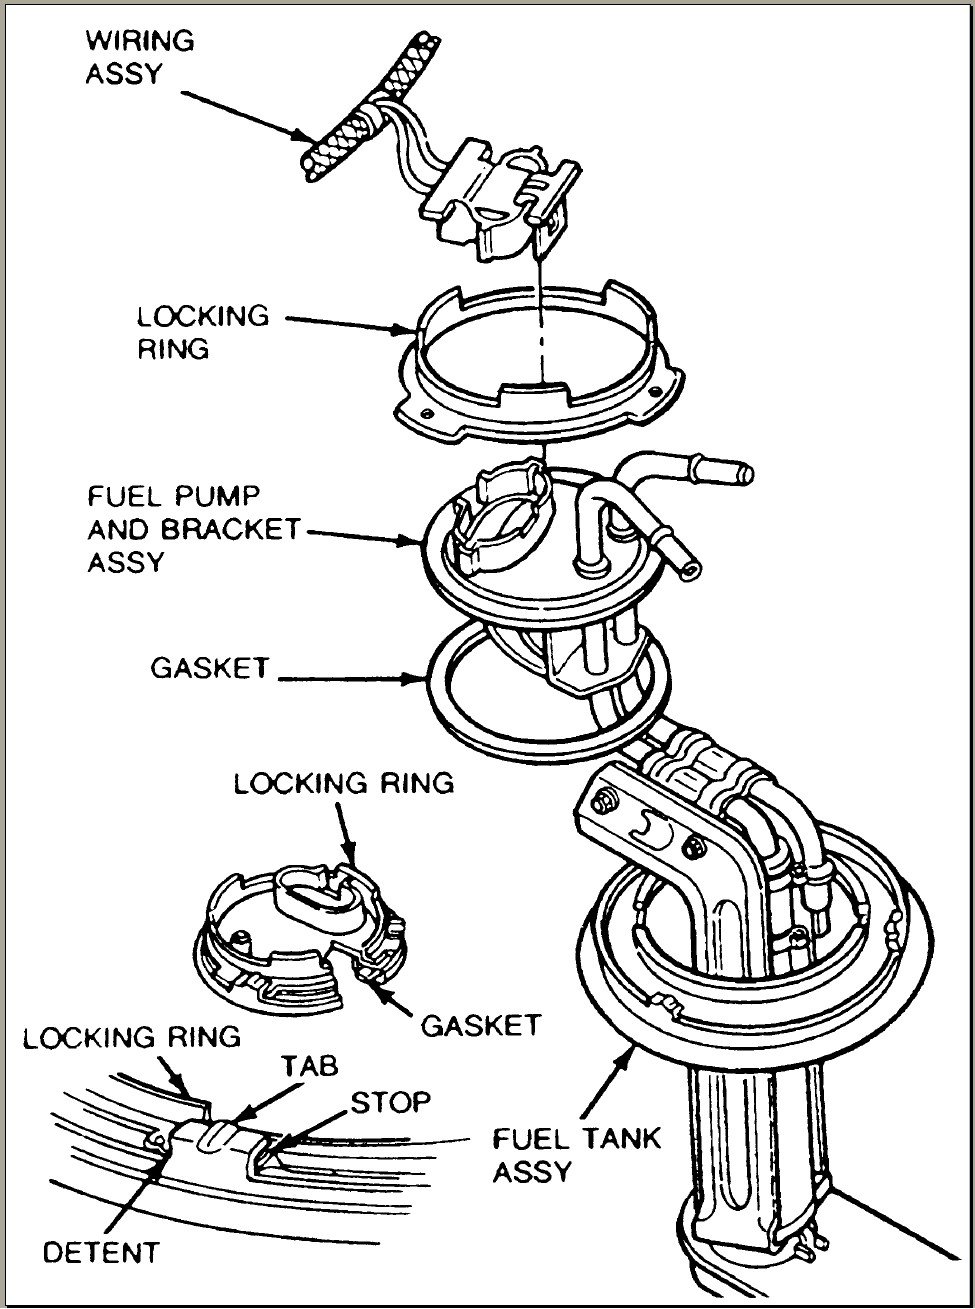 2001 mustang fuel system diagram   32 wiring diagram